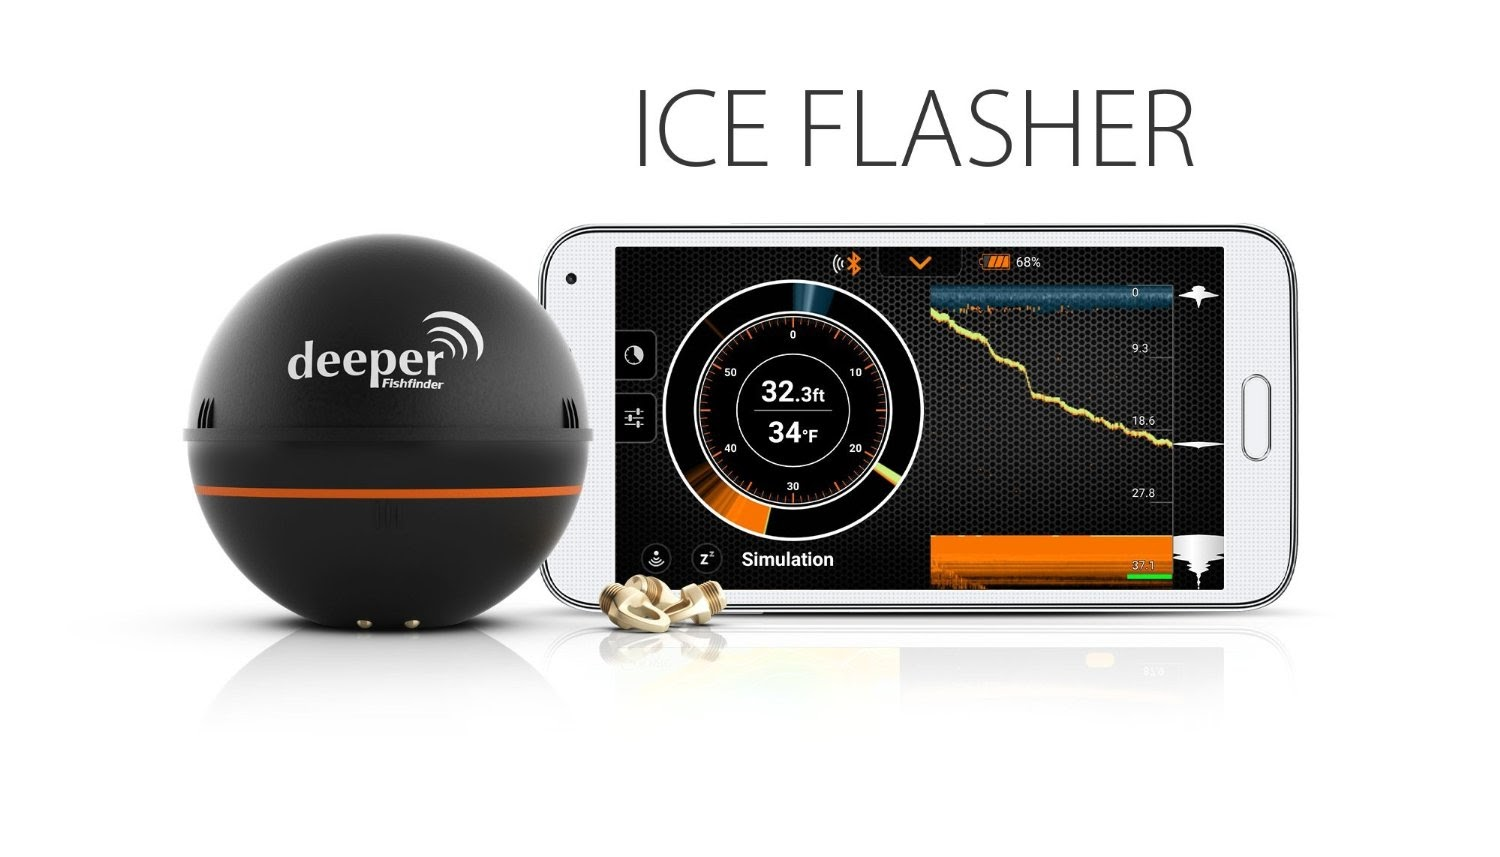 Health and fitness den deeper smart portable fish finder for Ice fishing flasher